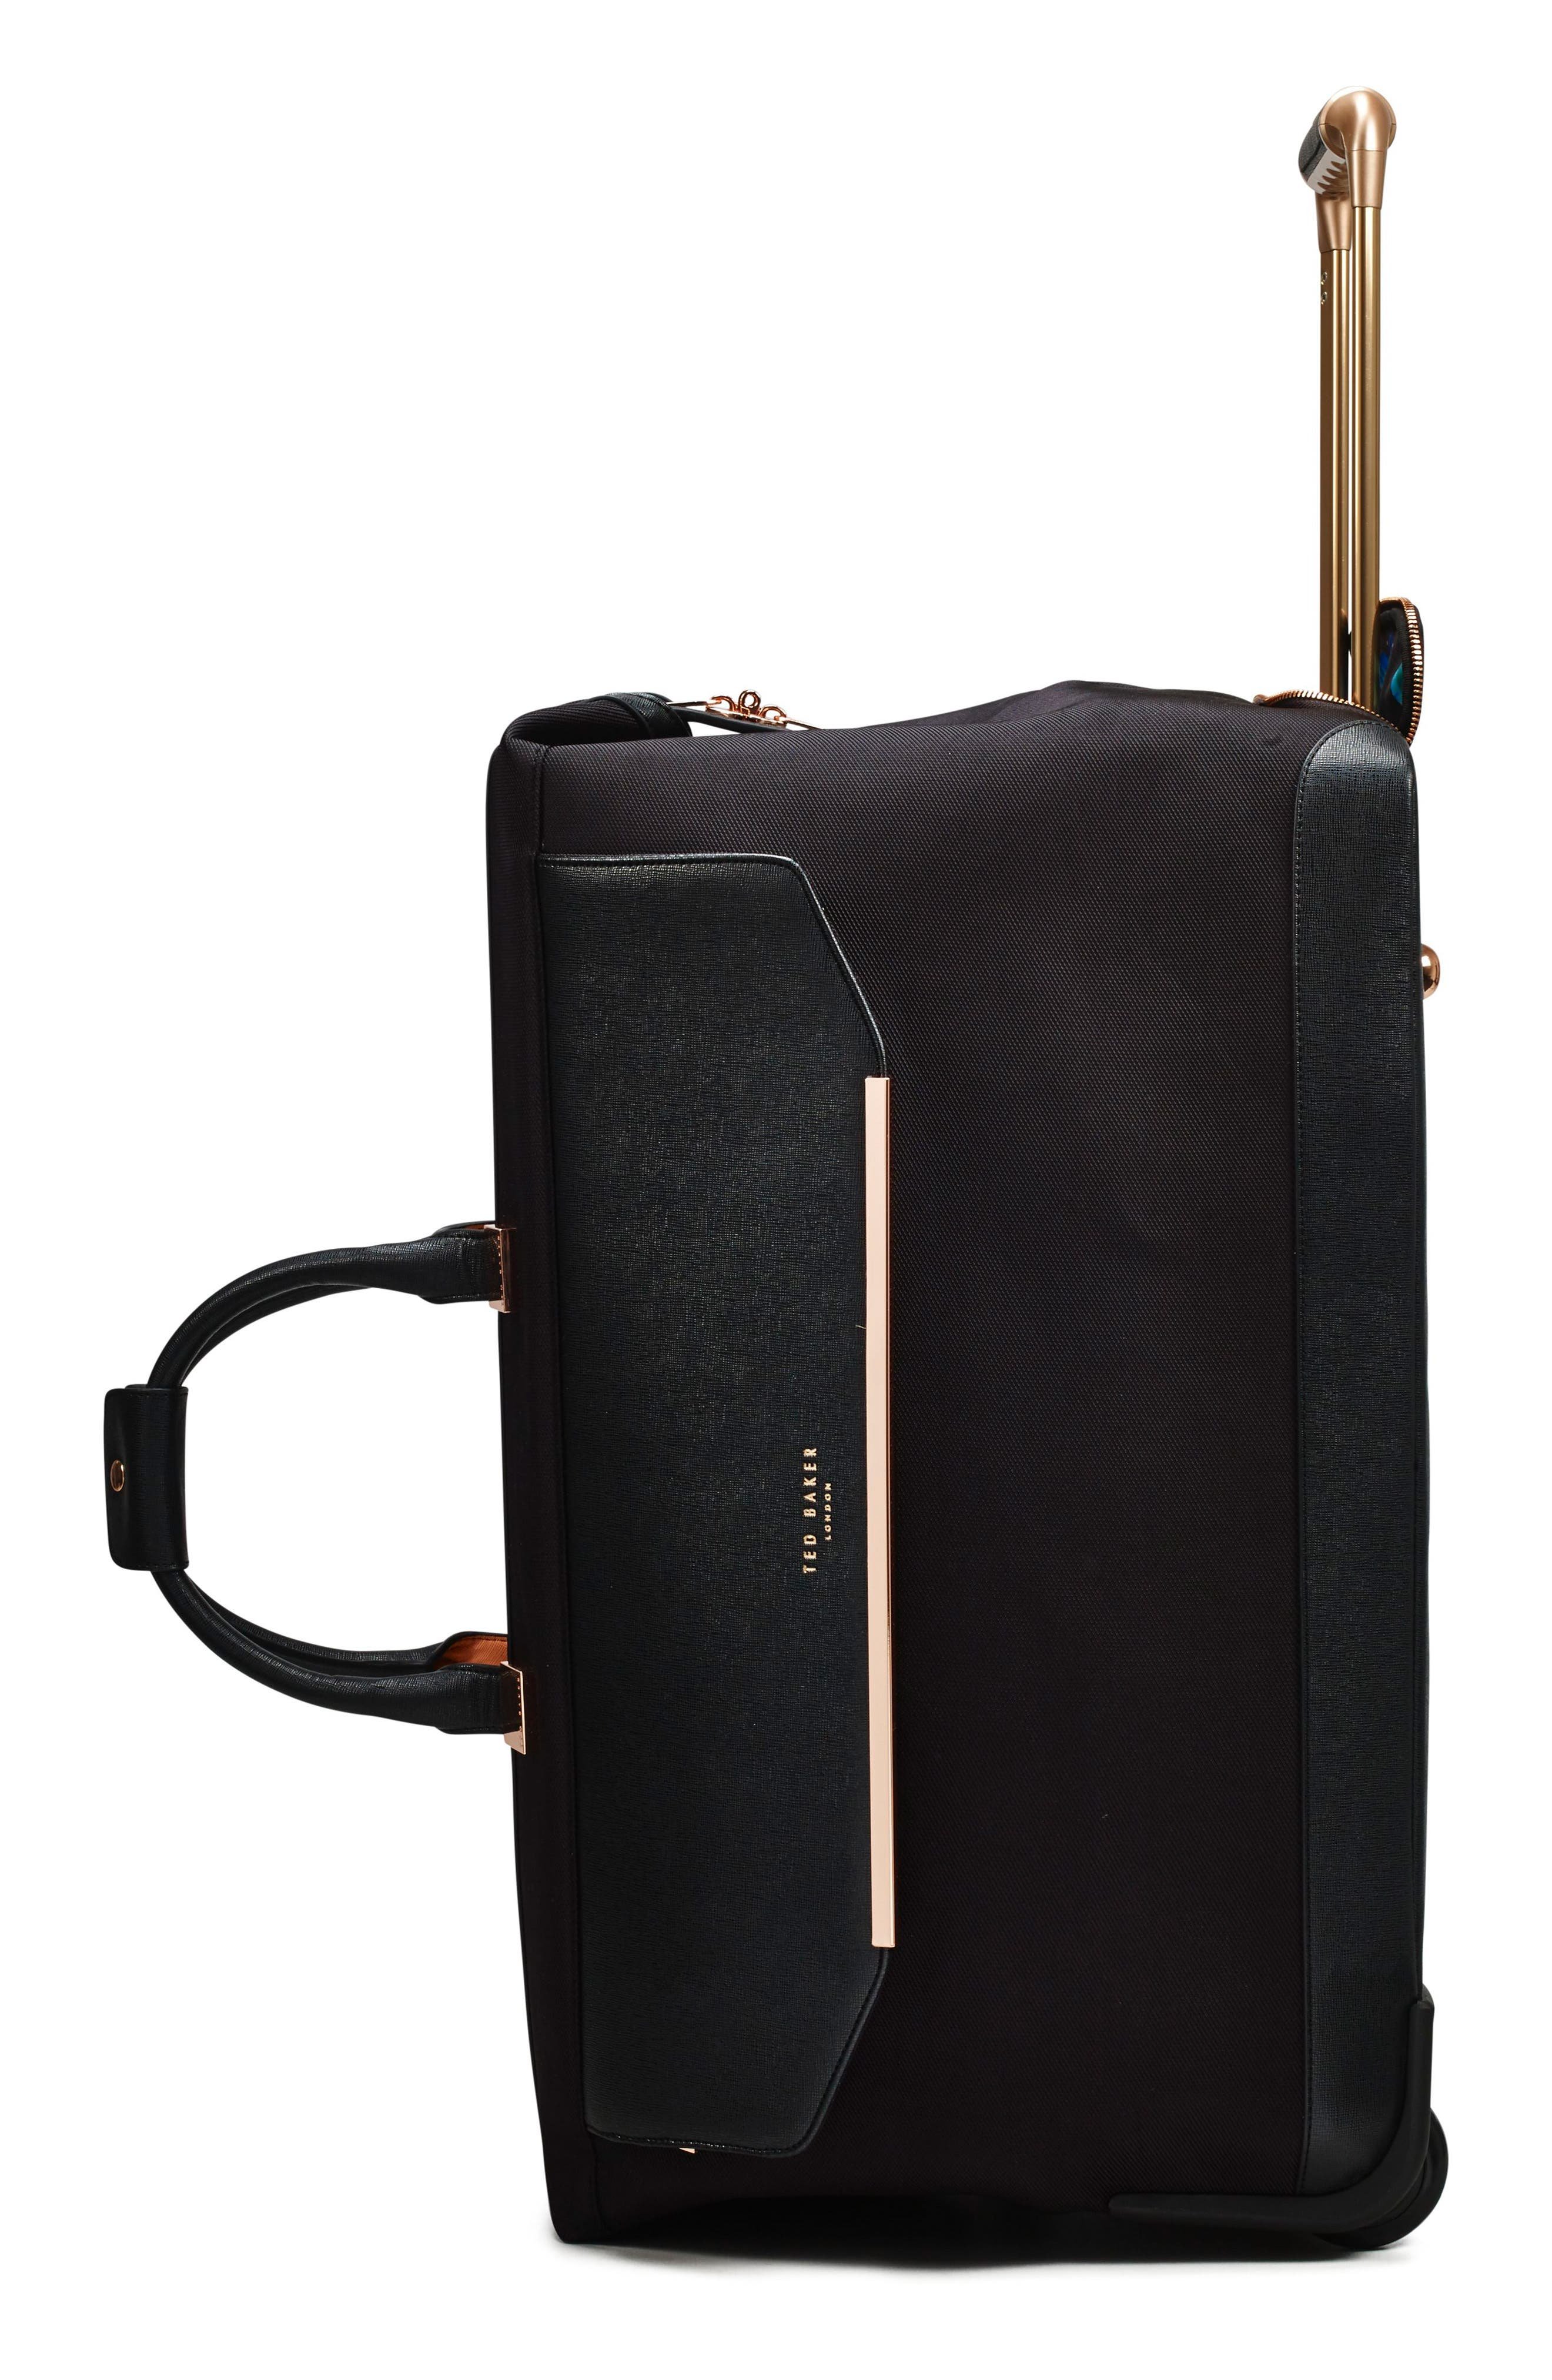 02c91e2c88c0 Ted Baker London Luggage   Travel Bags